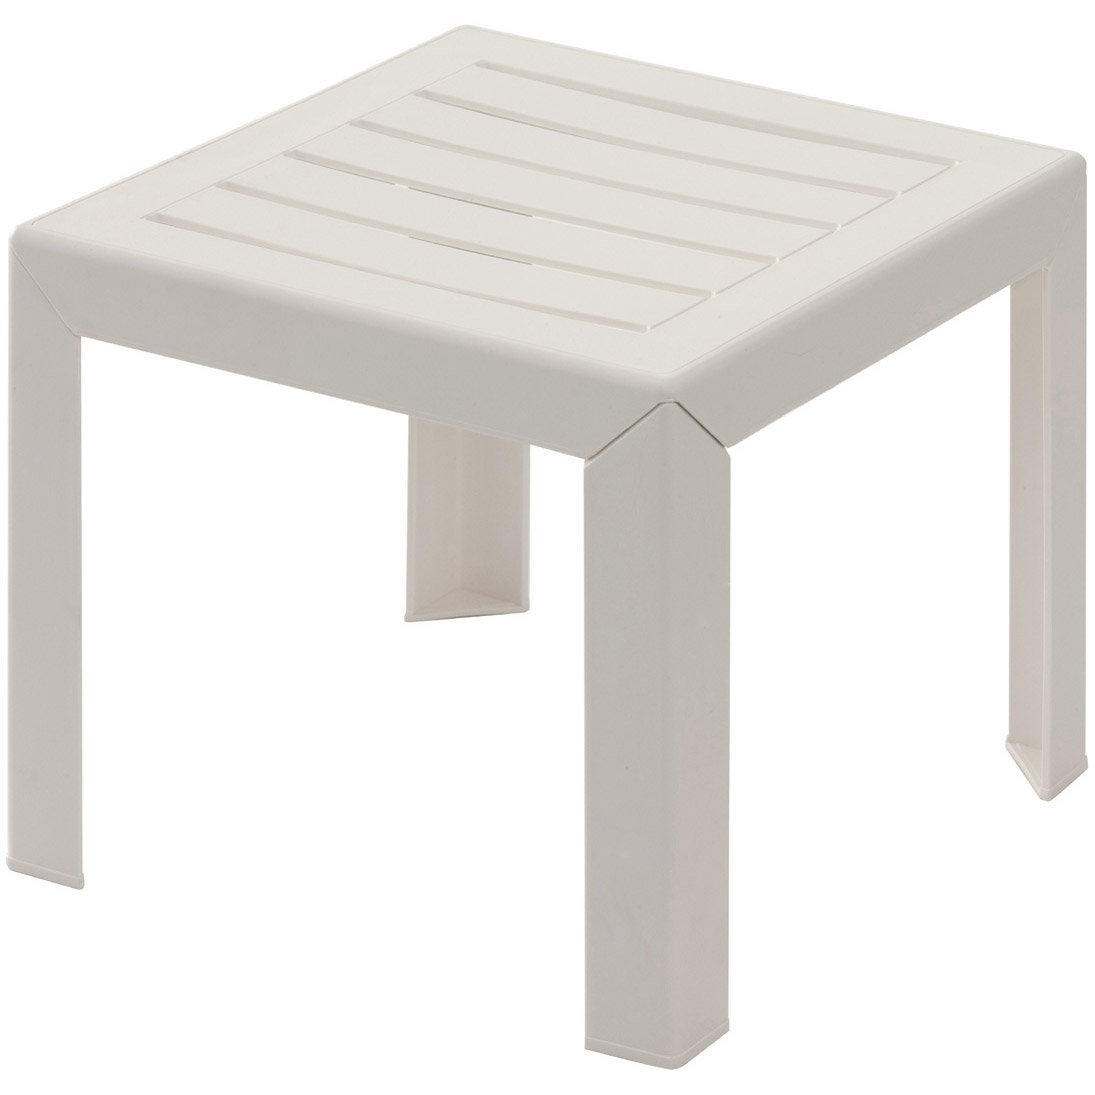 Table basse grosfillex miami carr e blanc leroy merlin for Table de nuit leroy merlin